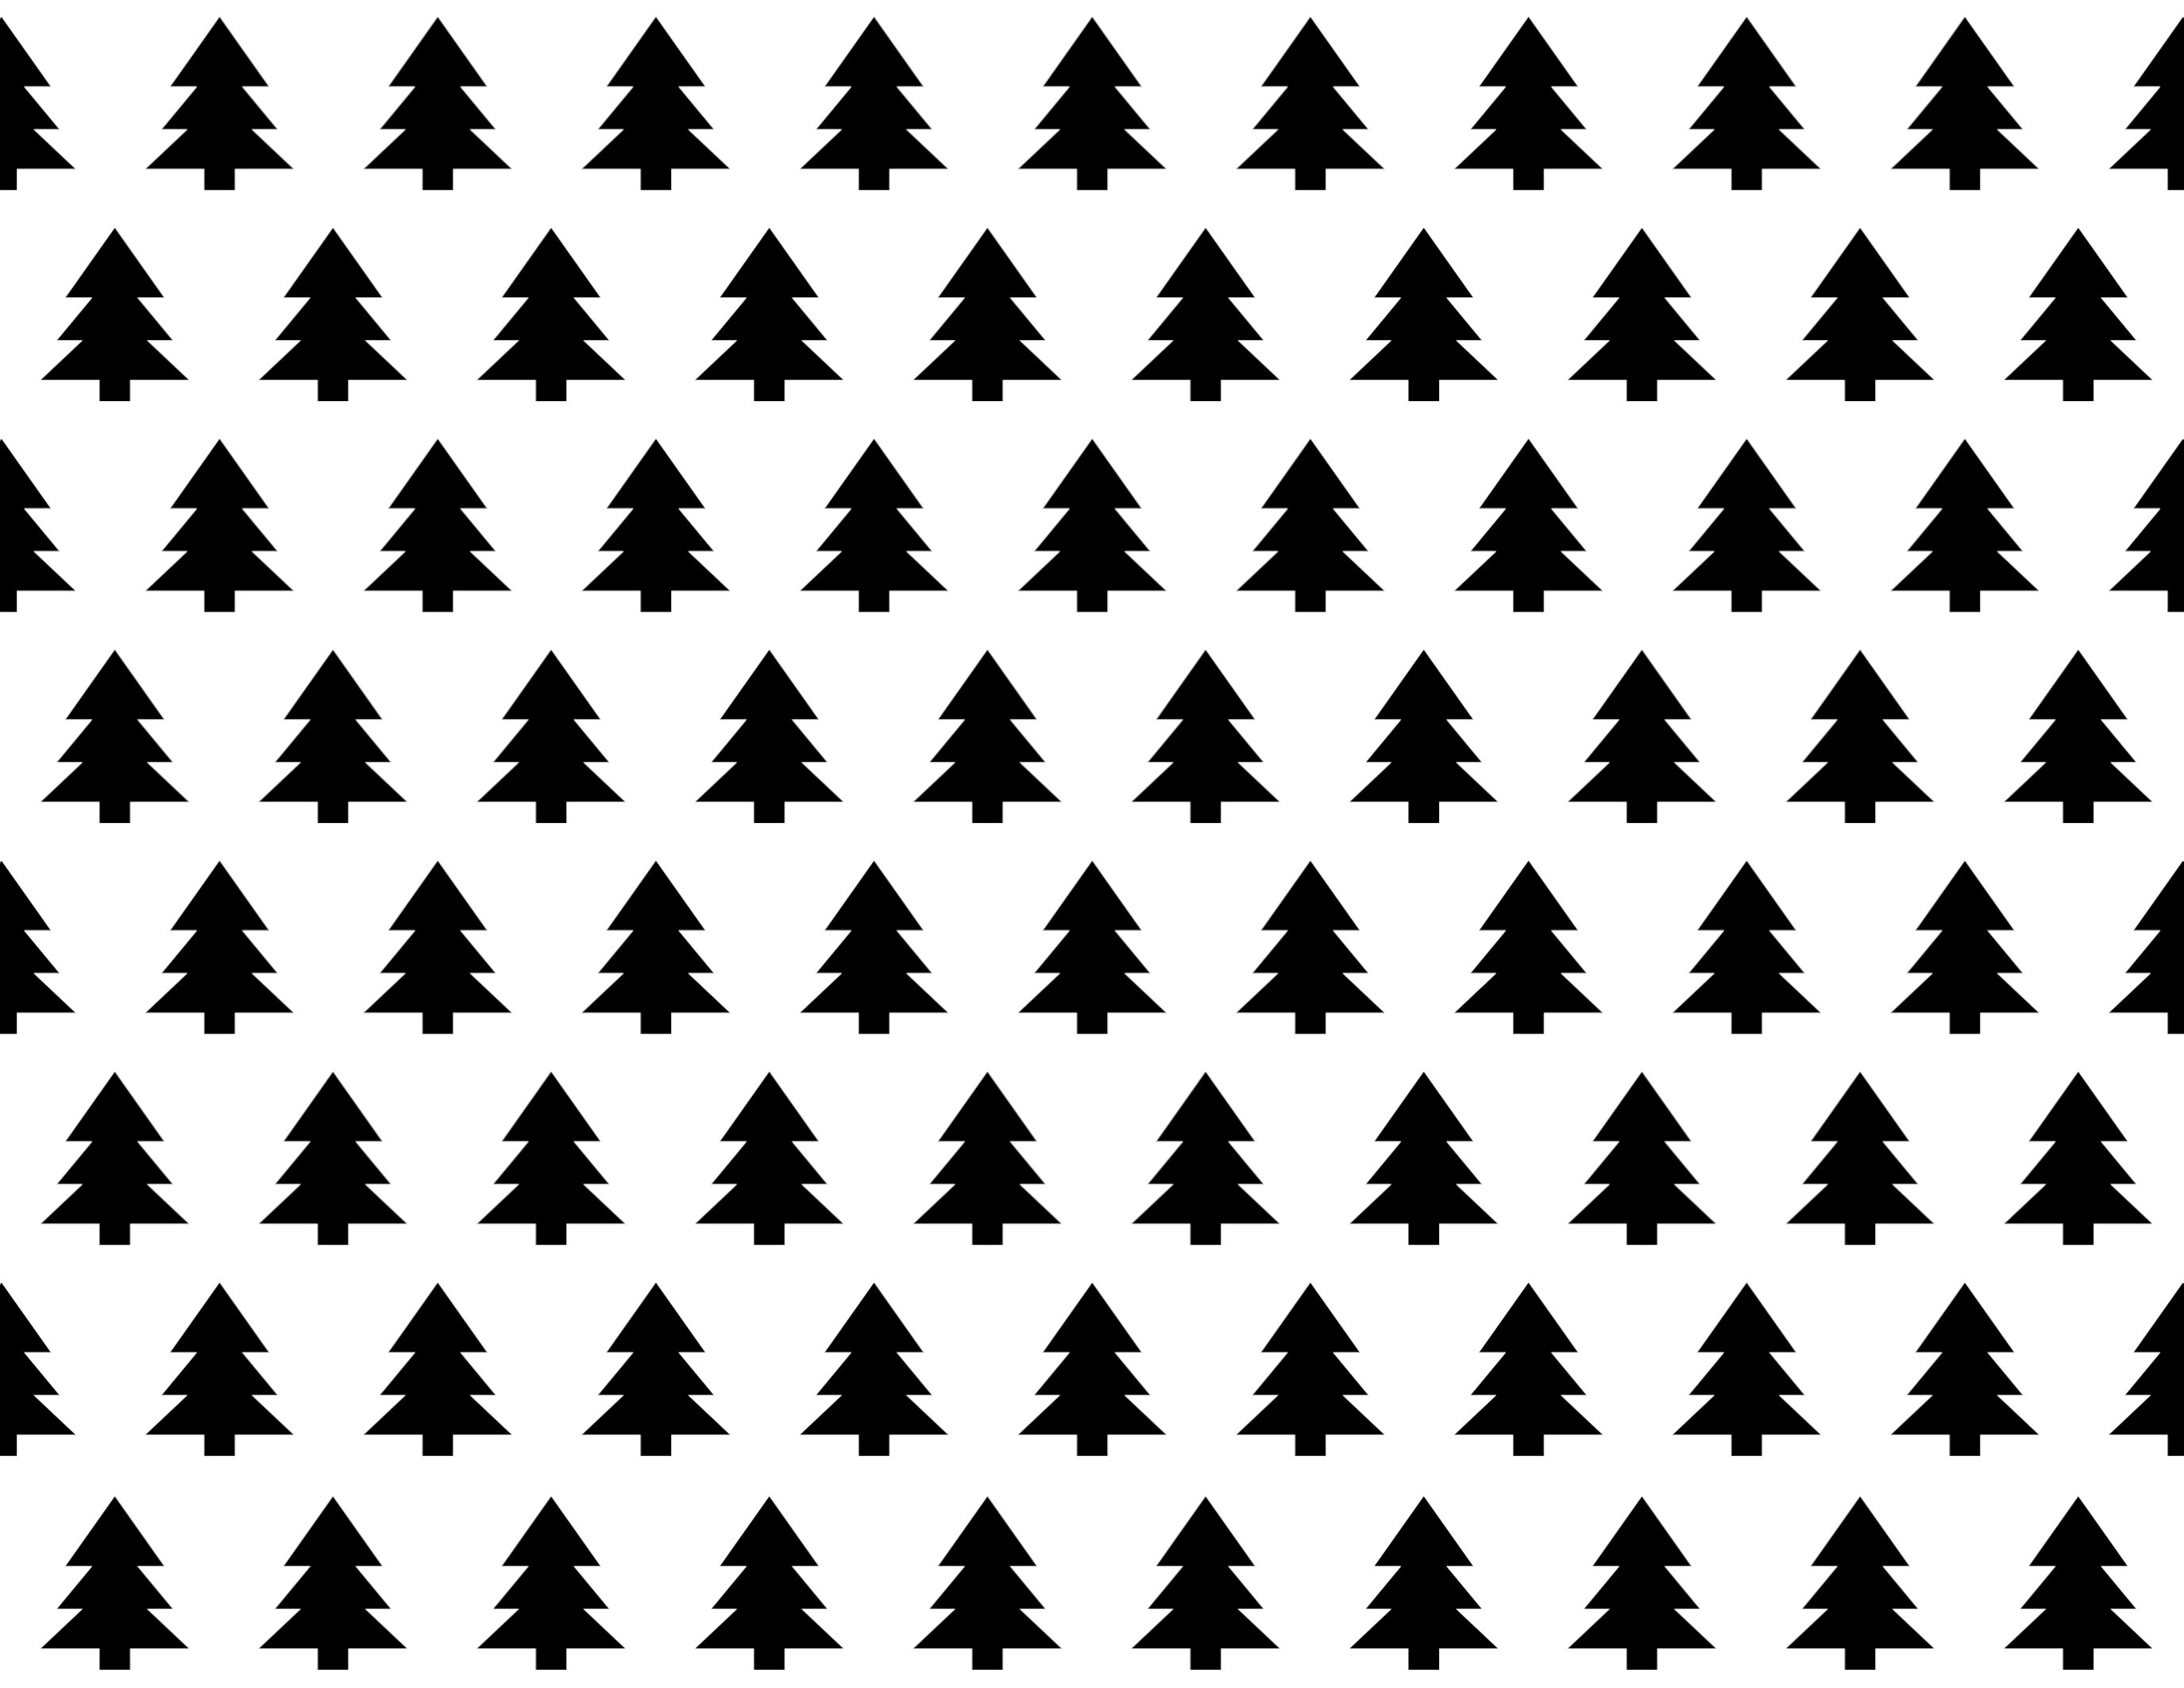 Free Printable Christmas Wrapping Paper - Paper Trail Design - Free Printable Christmas Paper